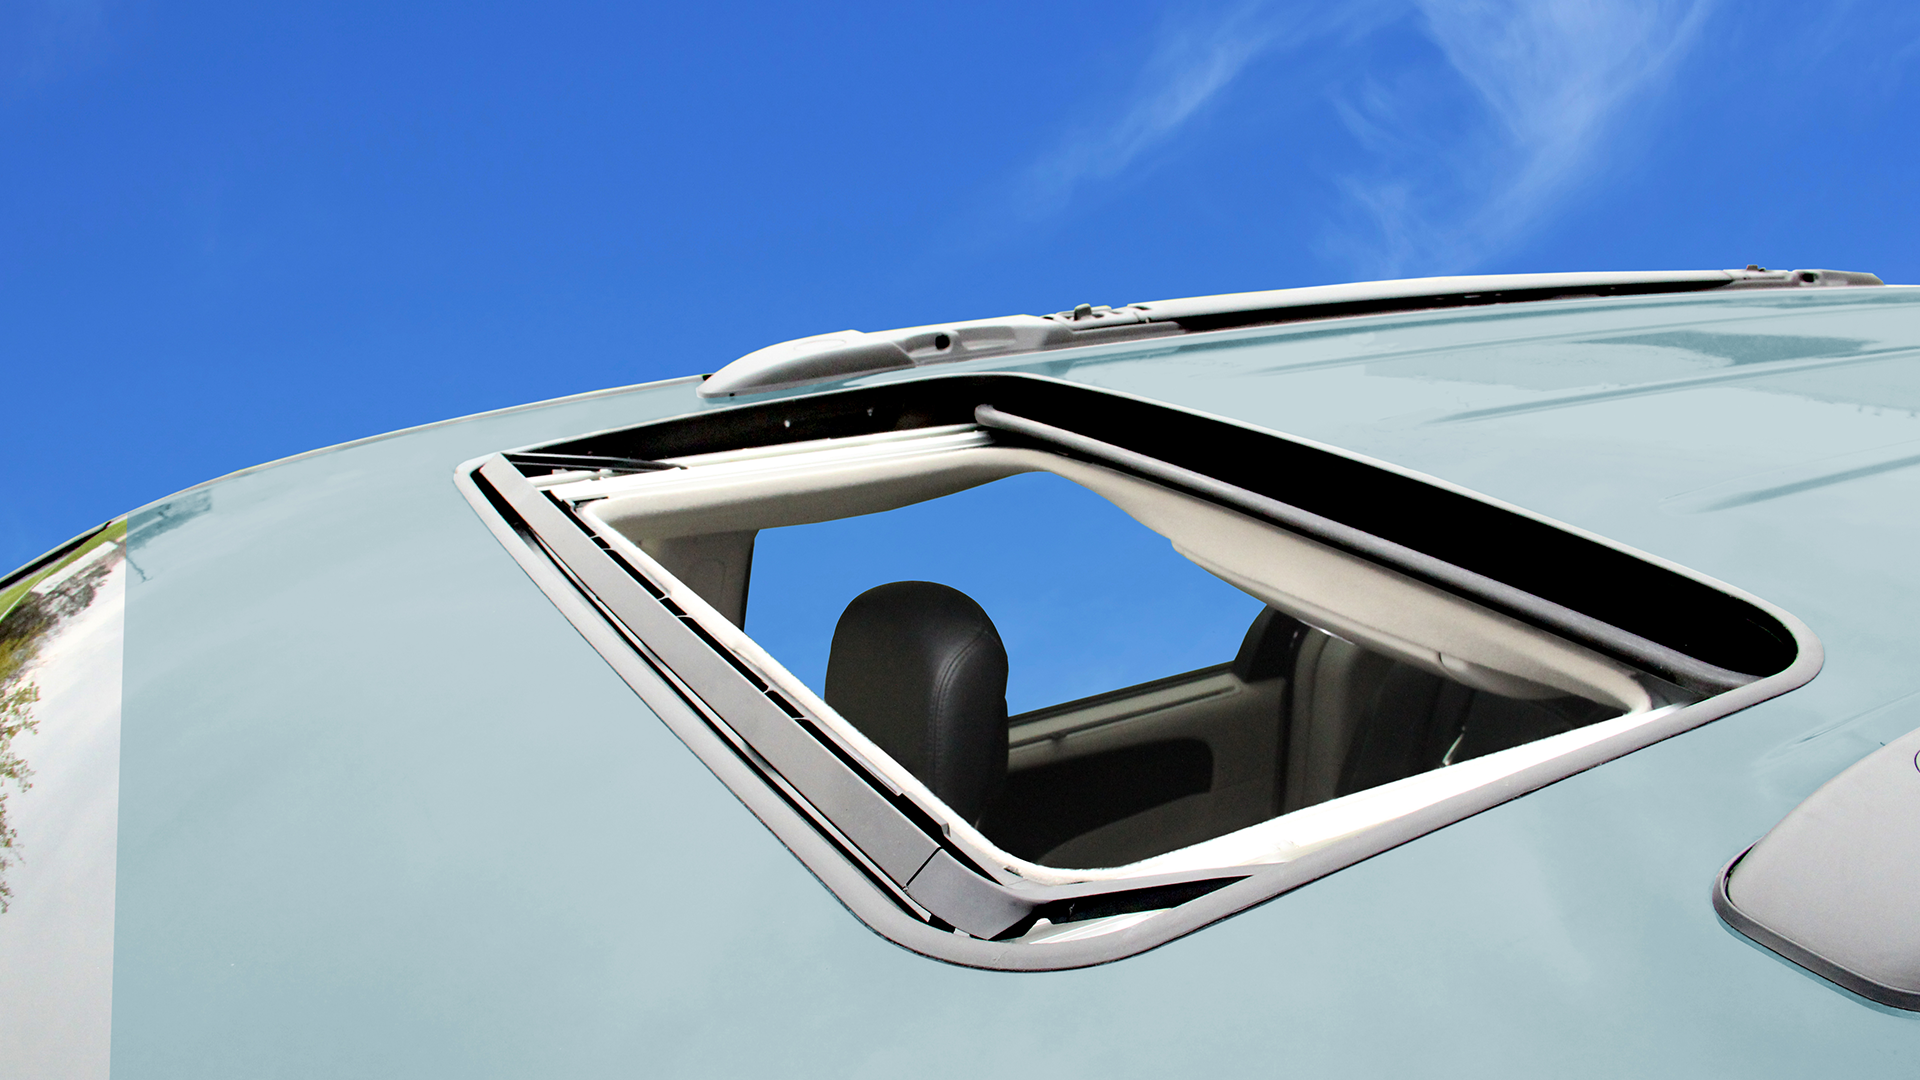 Inbuilt Sunroofs on